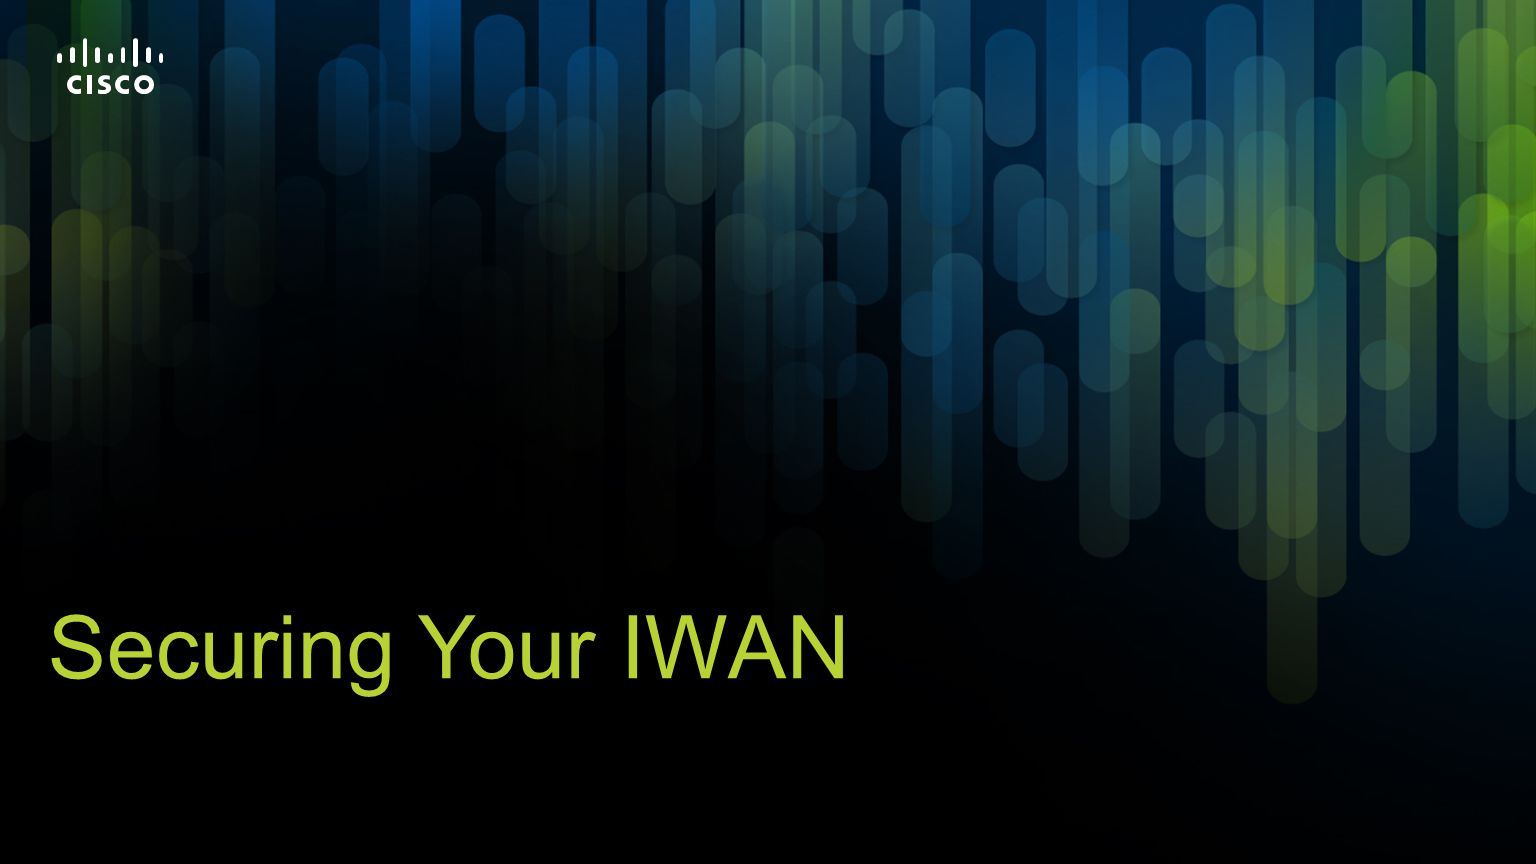 Securing Your IWAN